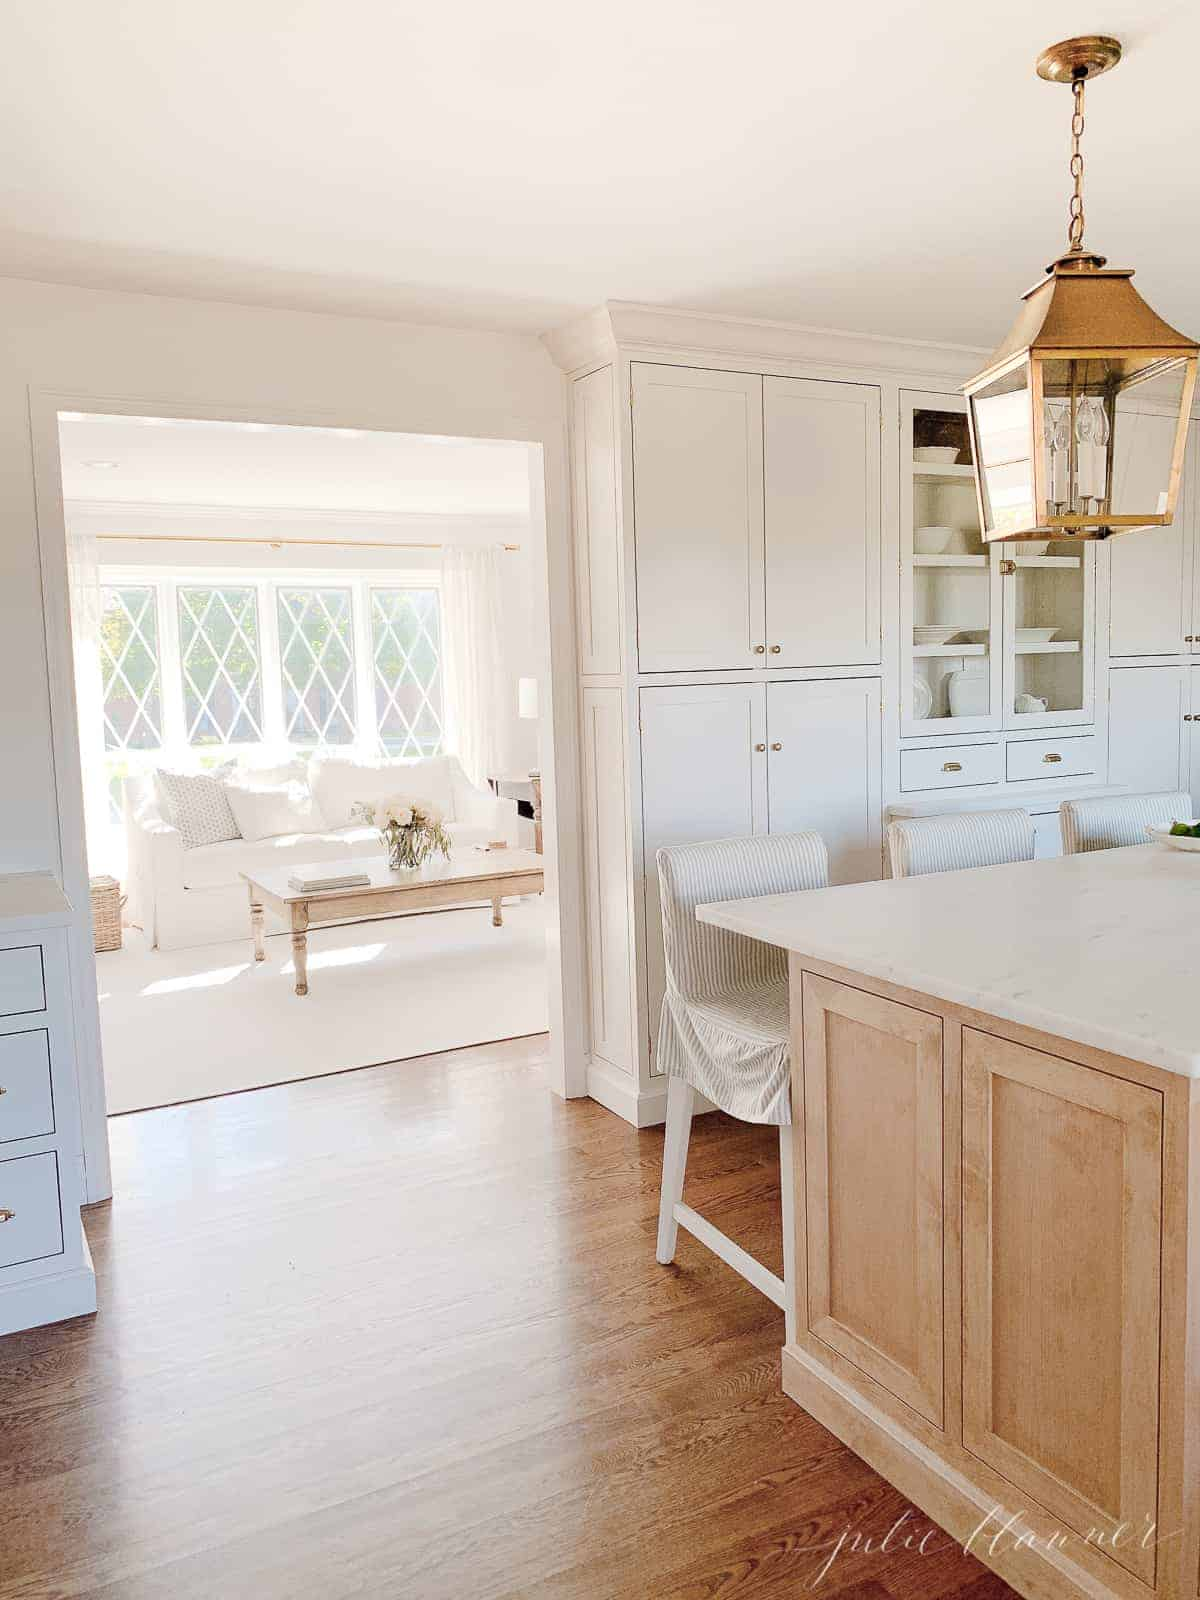 A kitchen island with a brass lantern hanging above.